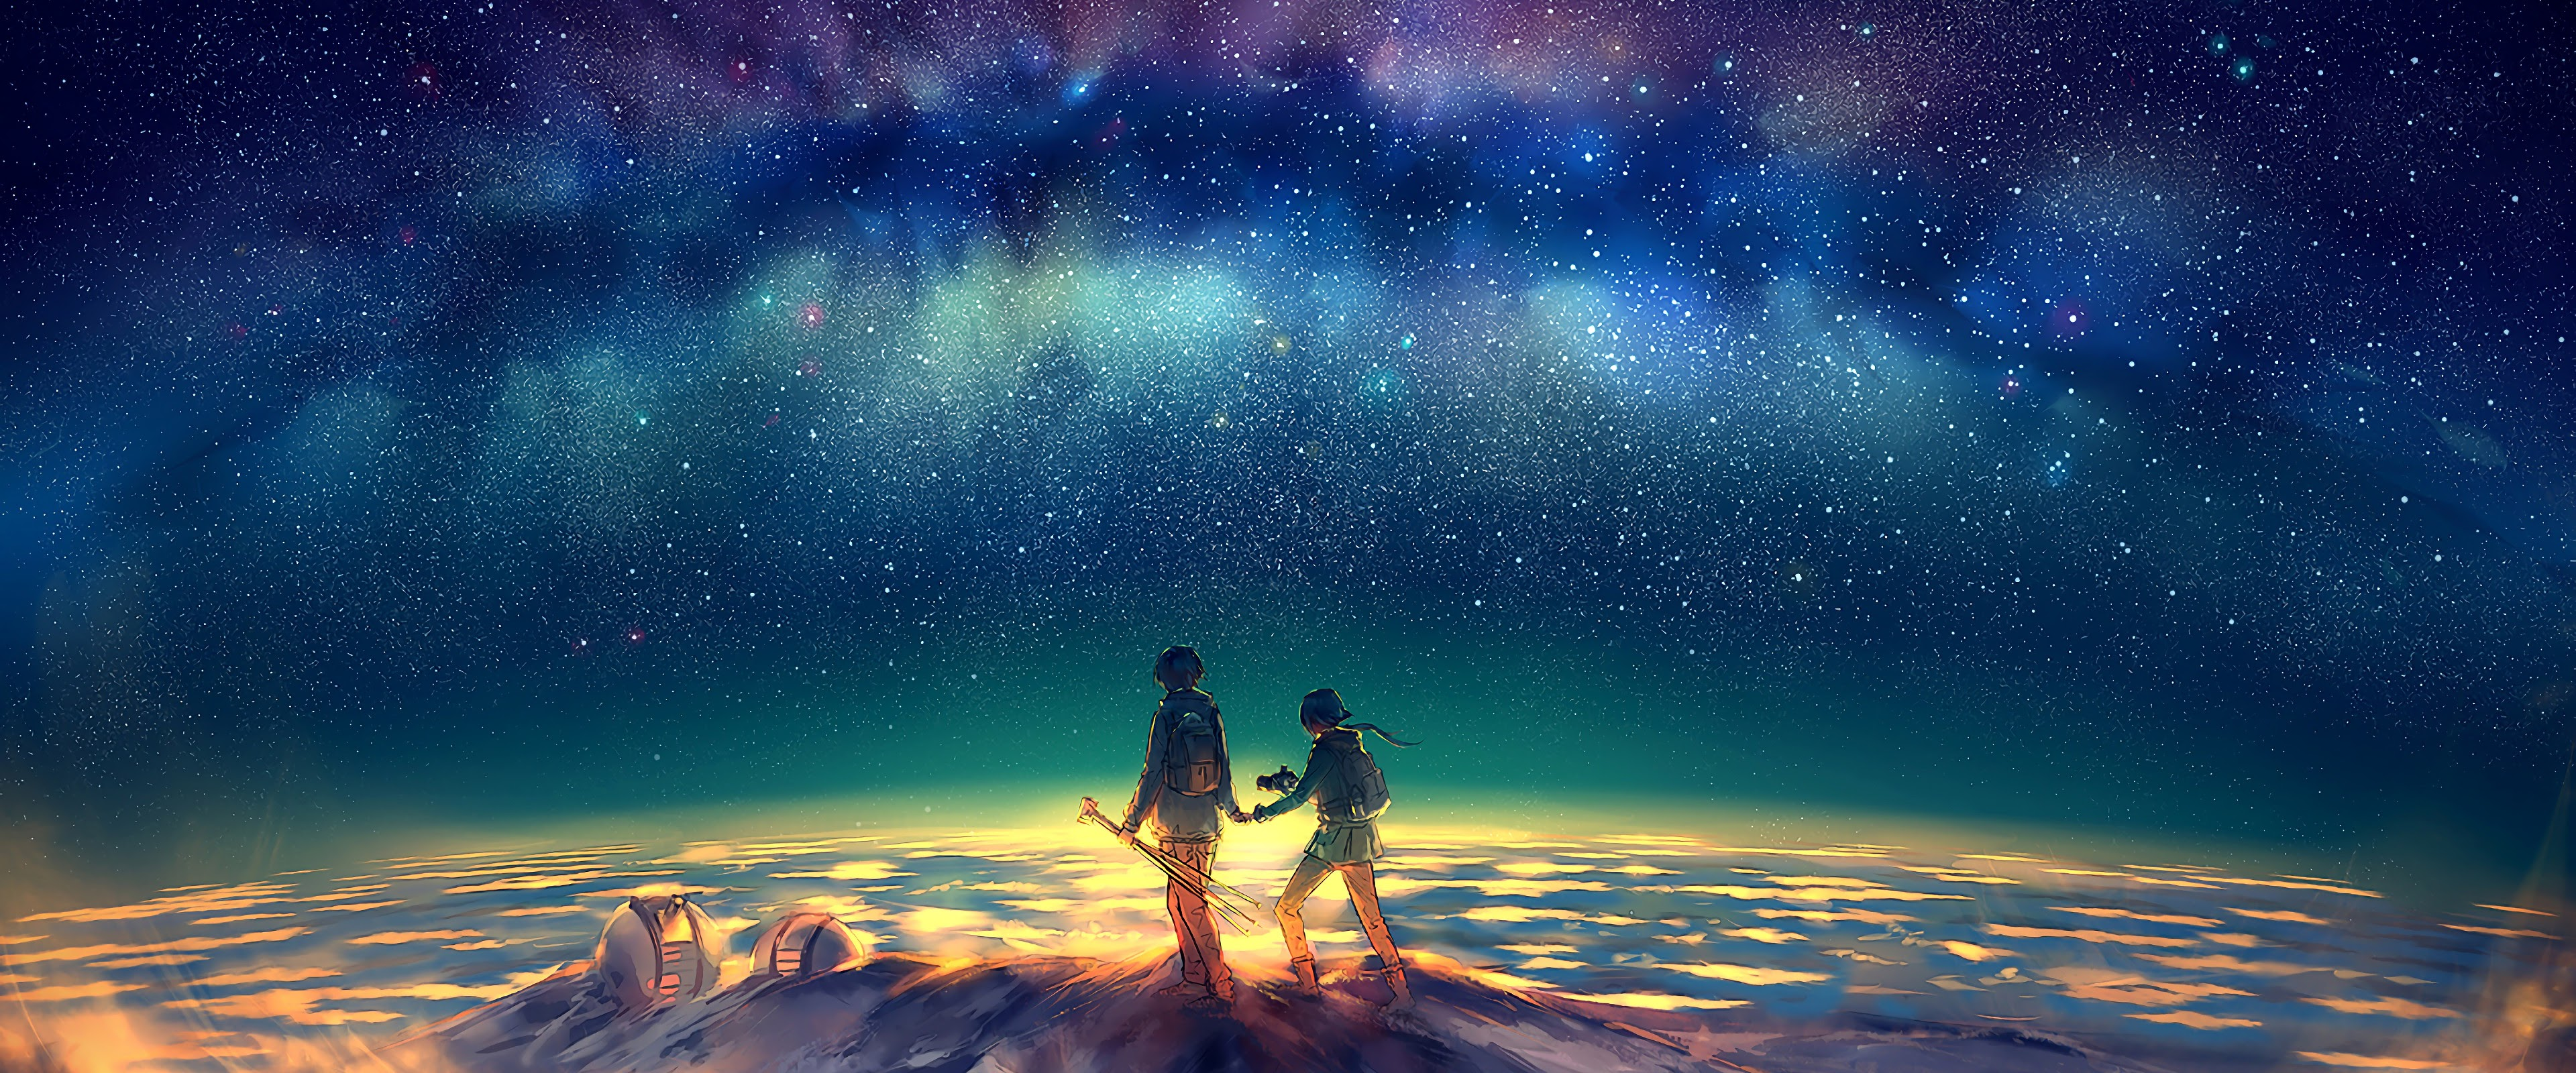 Anime Stars Night Sky Summit 4k 3840x2160 Wallpaper 50